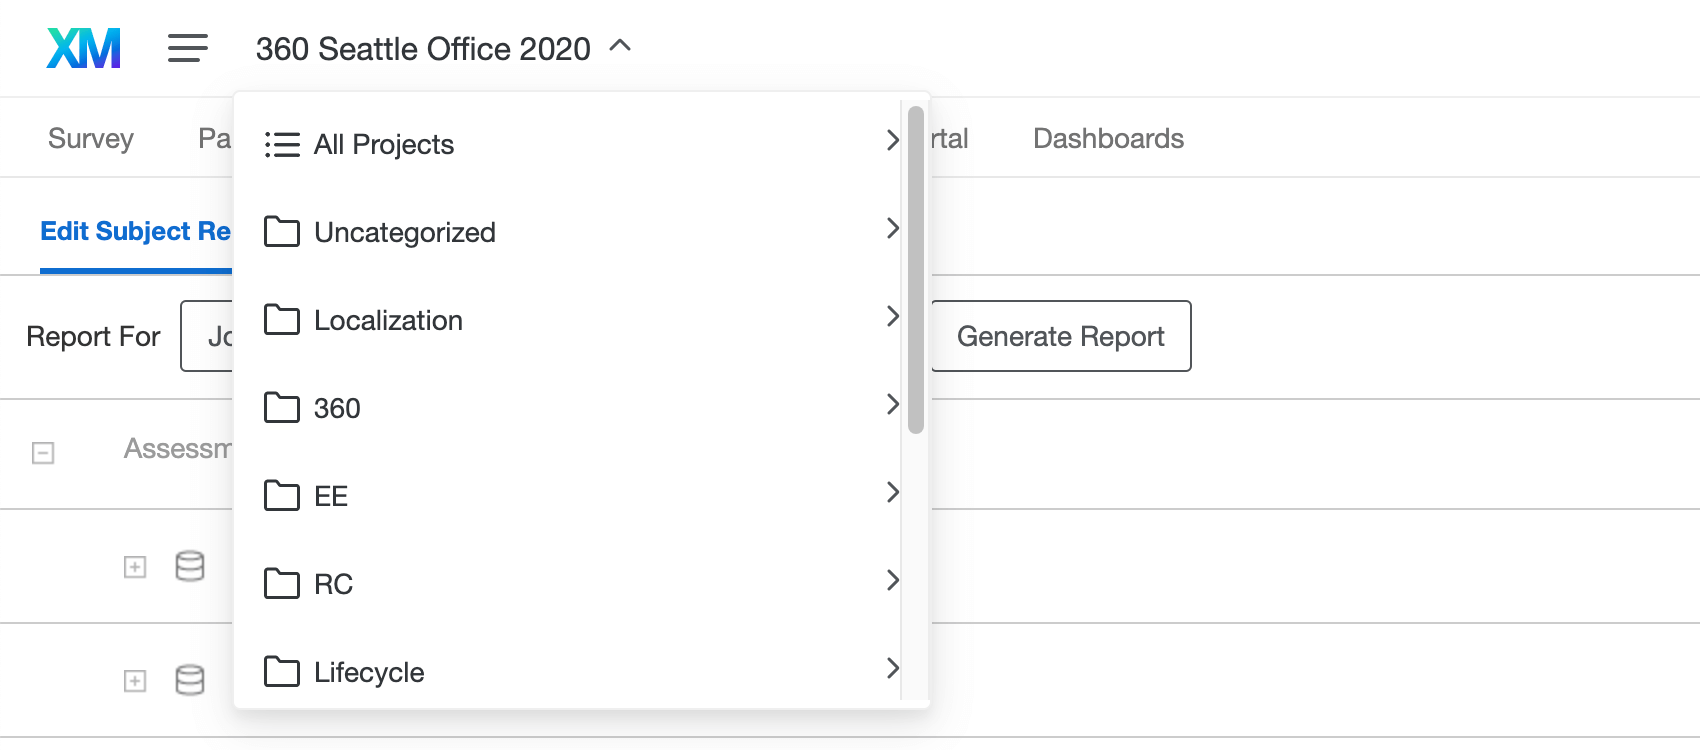 Selecting your report from the report dropdown selection menu in the upper-left corner